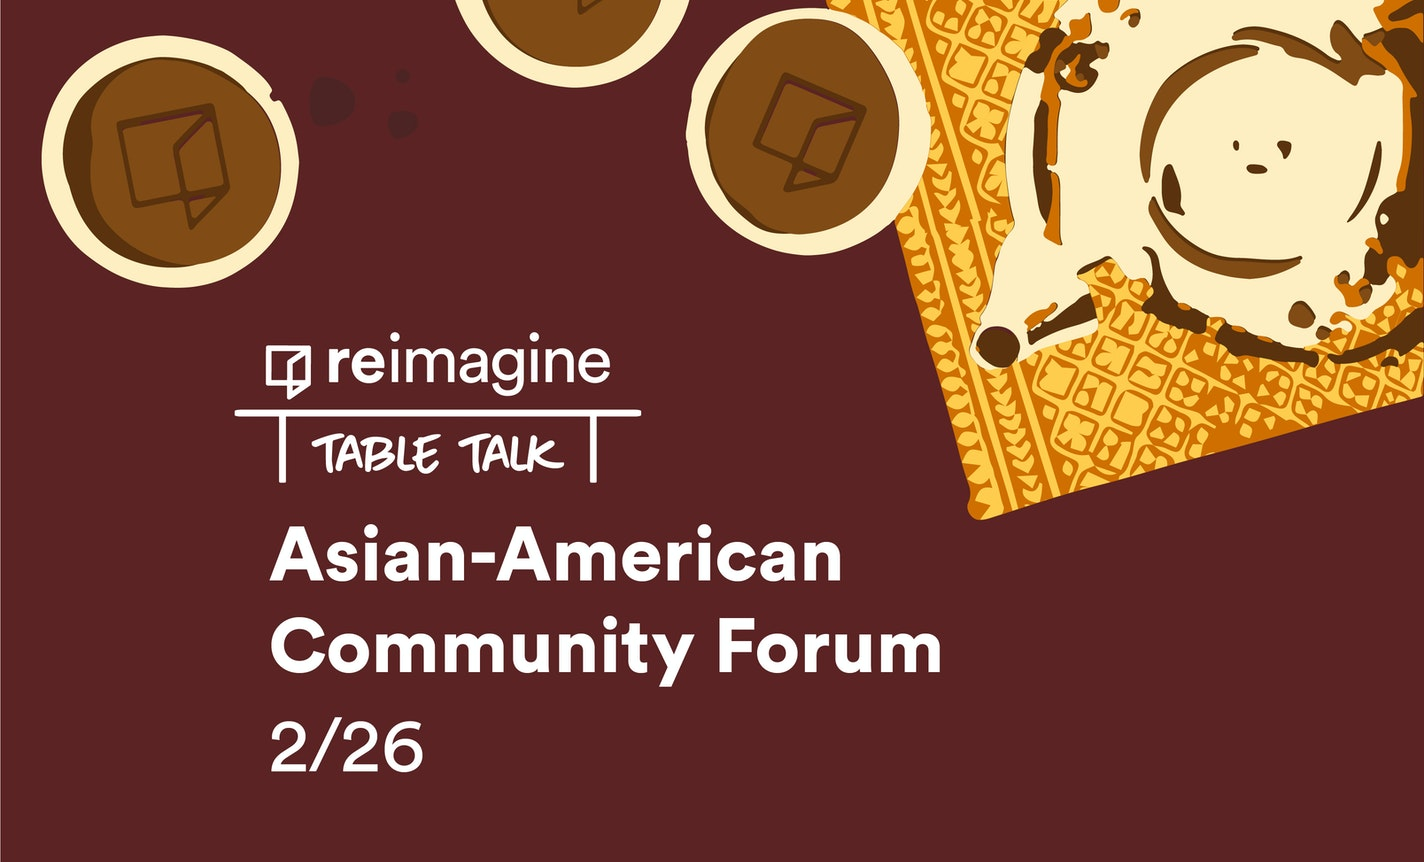 Table Talk: Asian-American Community Forum